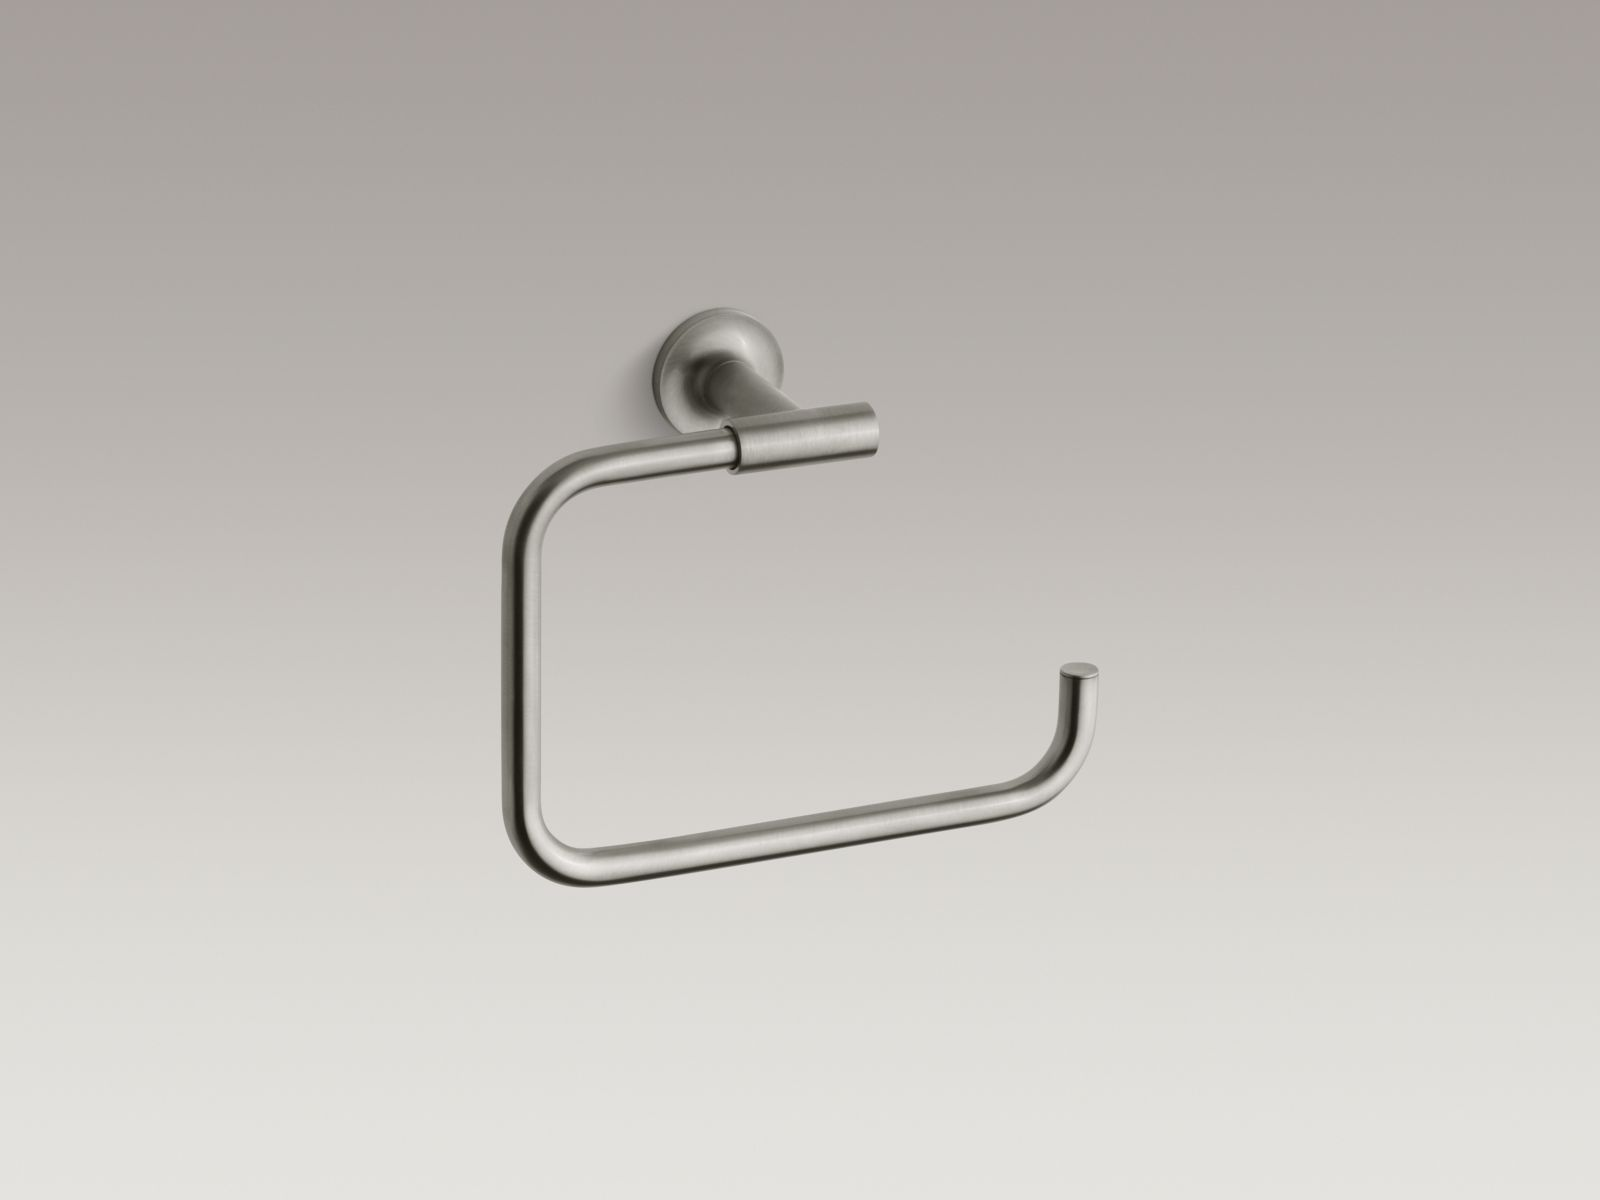 Kohler K-14441-BN Purist Towel Ring Brushed Nickel